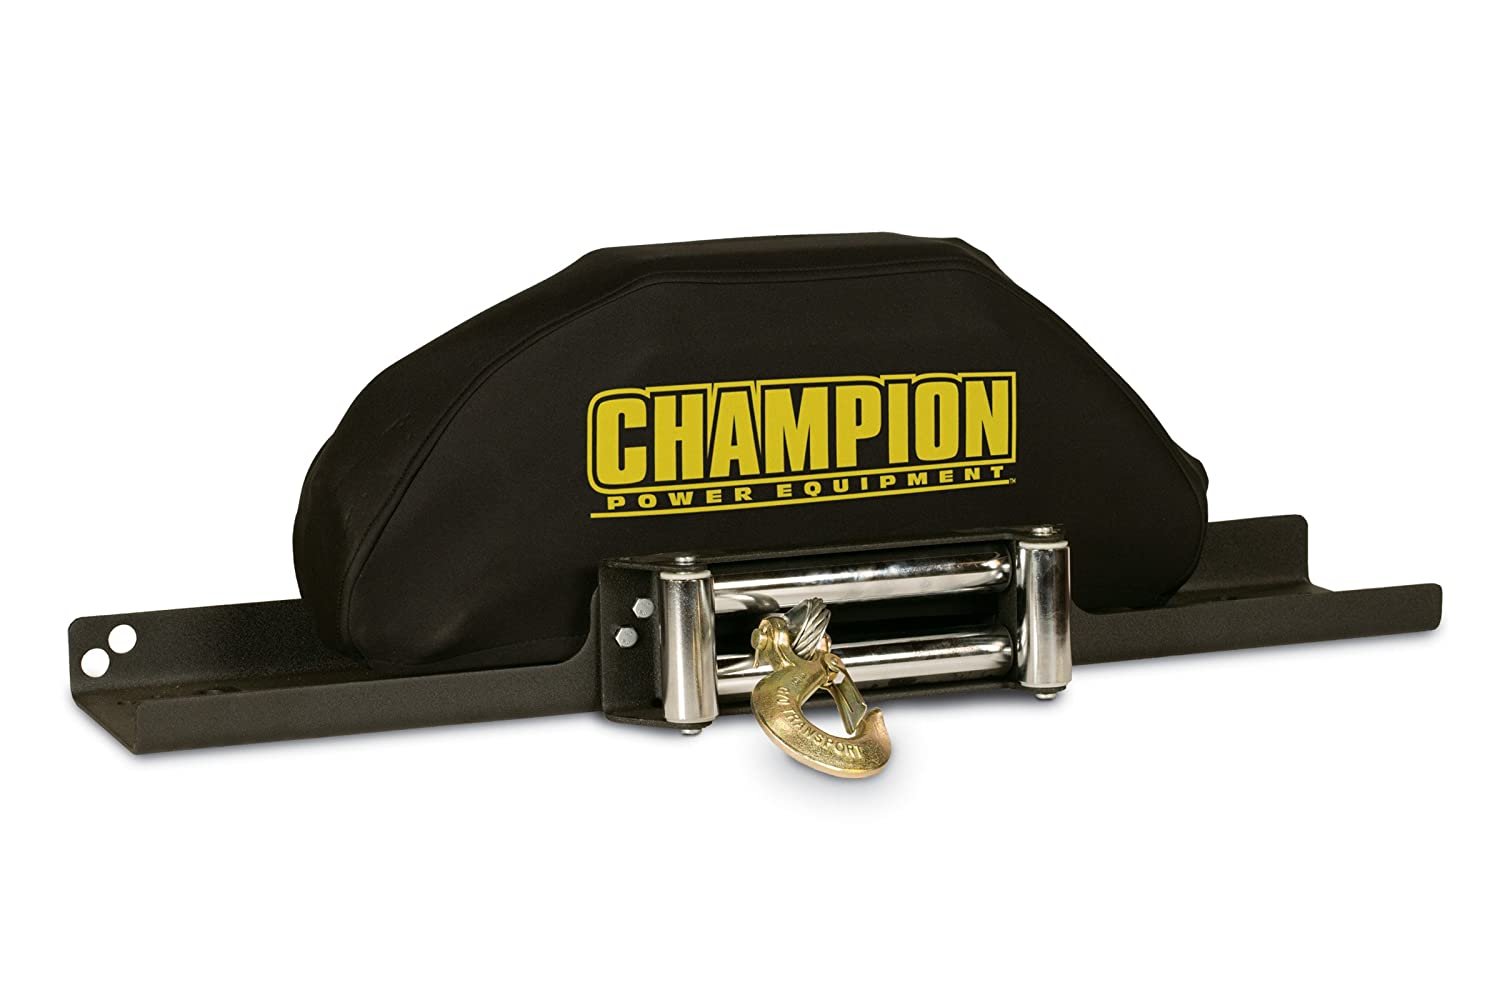 Champion Weather-Resistant Neoprene Storage Cover for Winches 8000-12,000 lb.